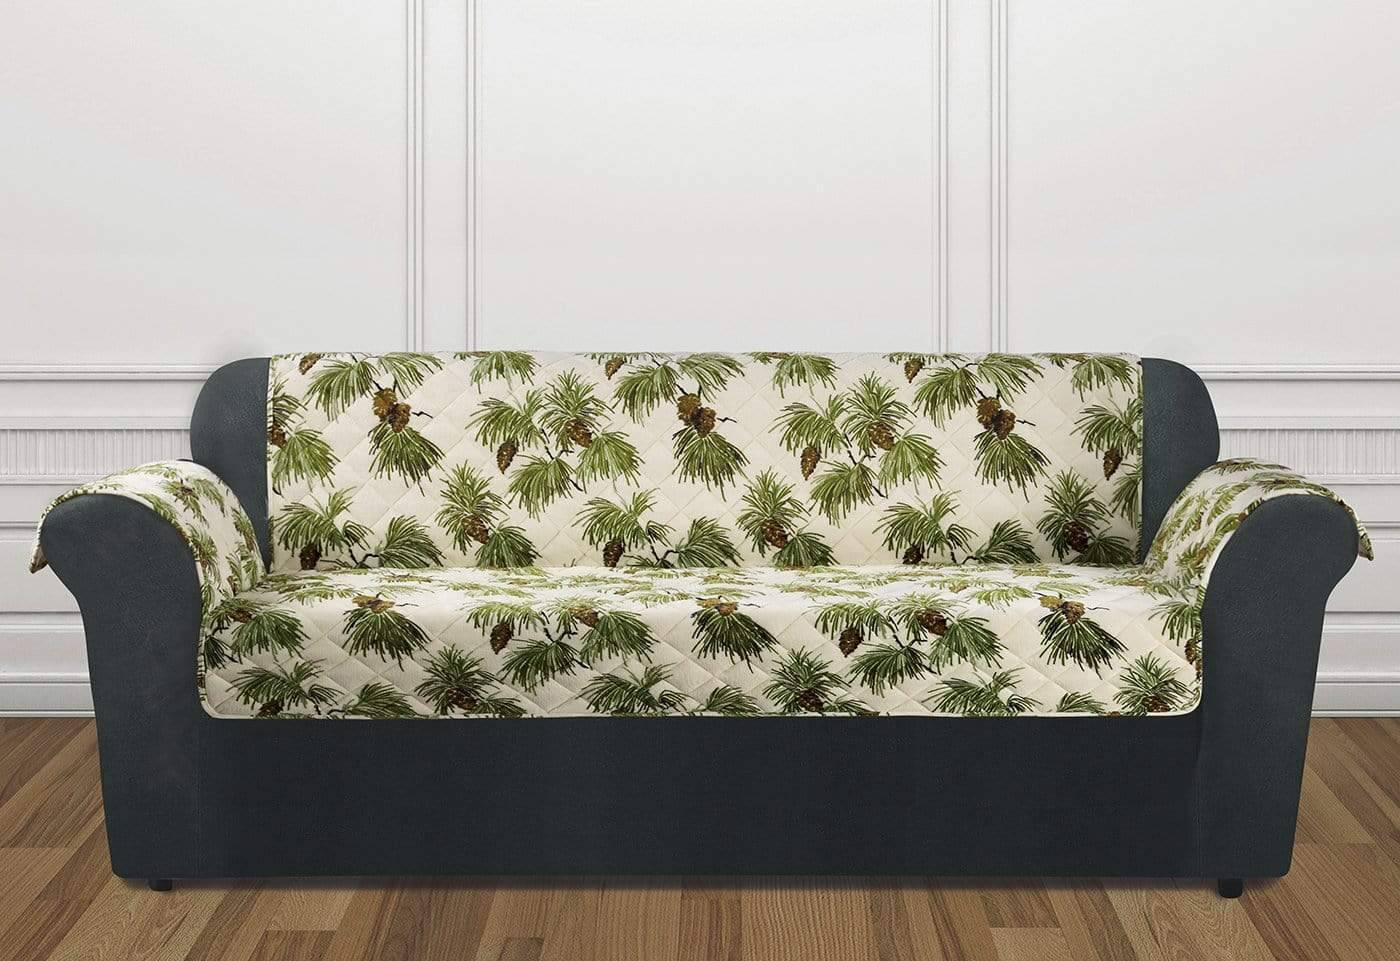 Holiday Sofa Furniture Cover 100% Polyester Pet Furniture Cover Machine Washable - Sofa / Pinecone Ivory